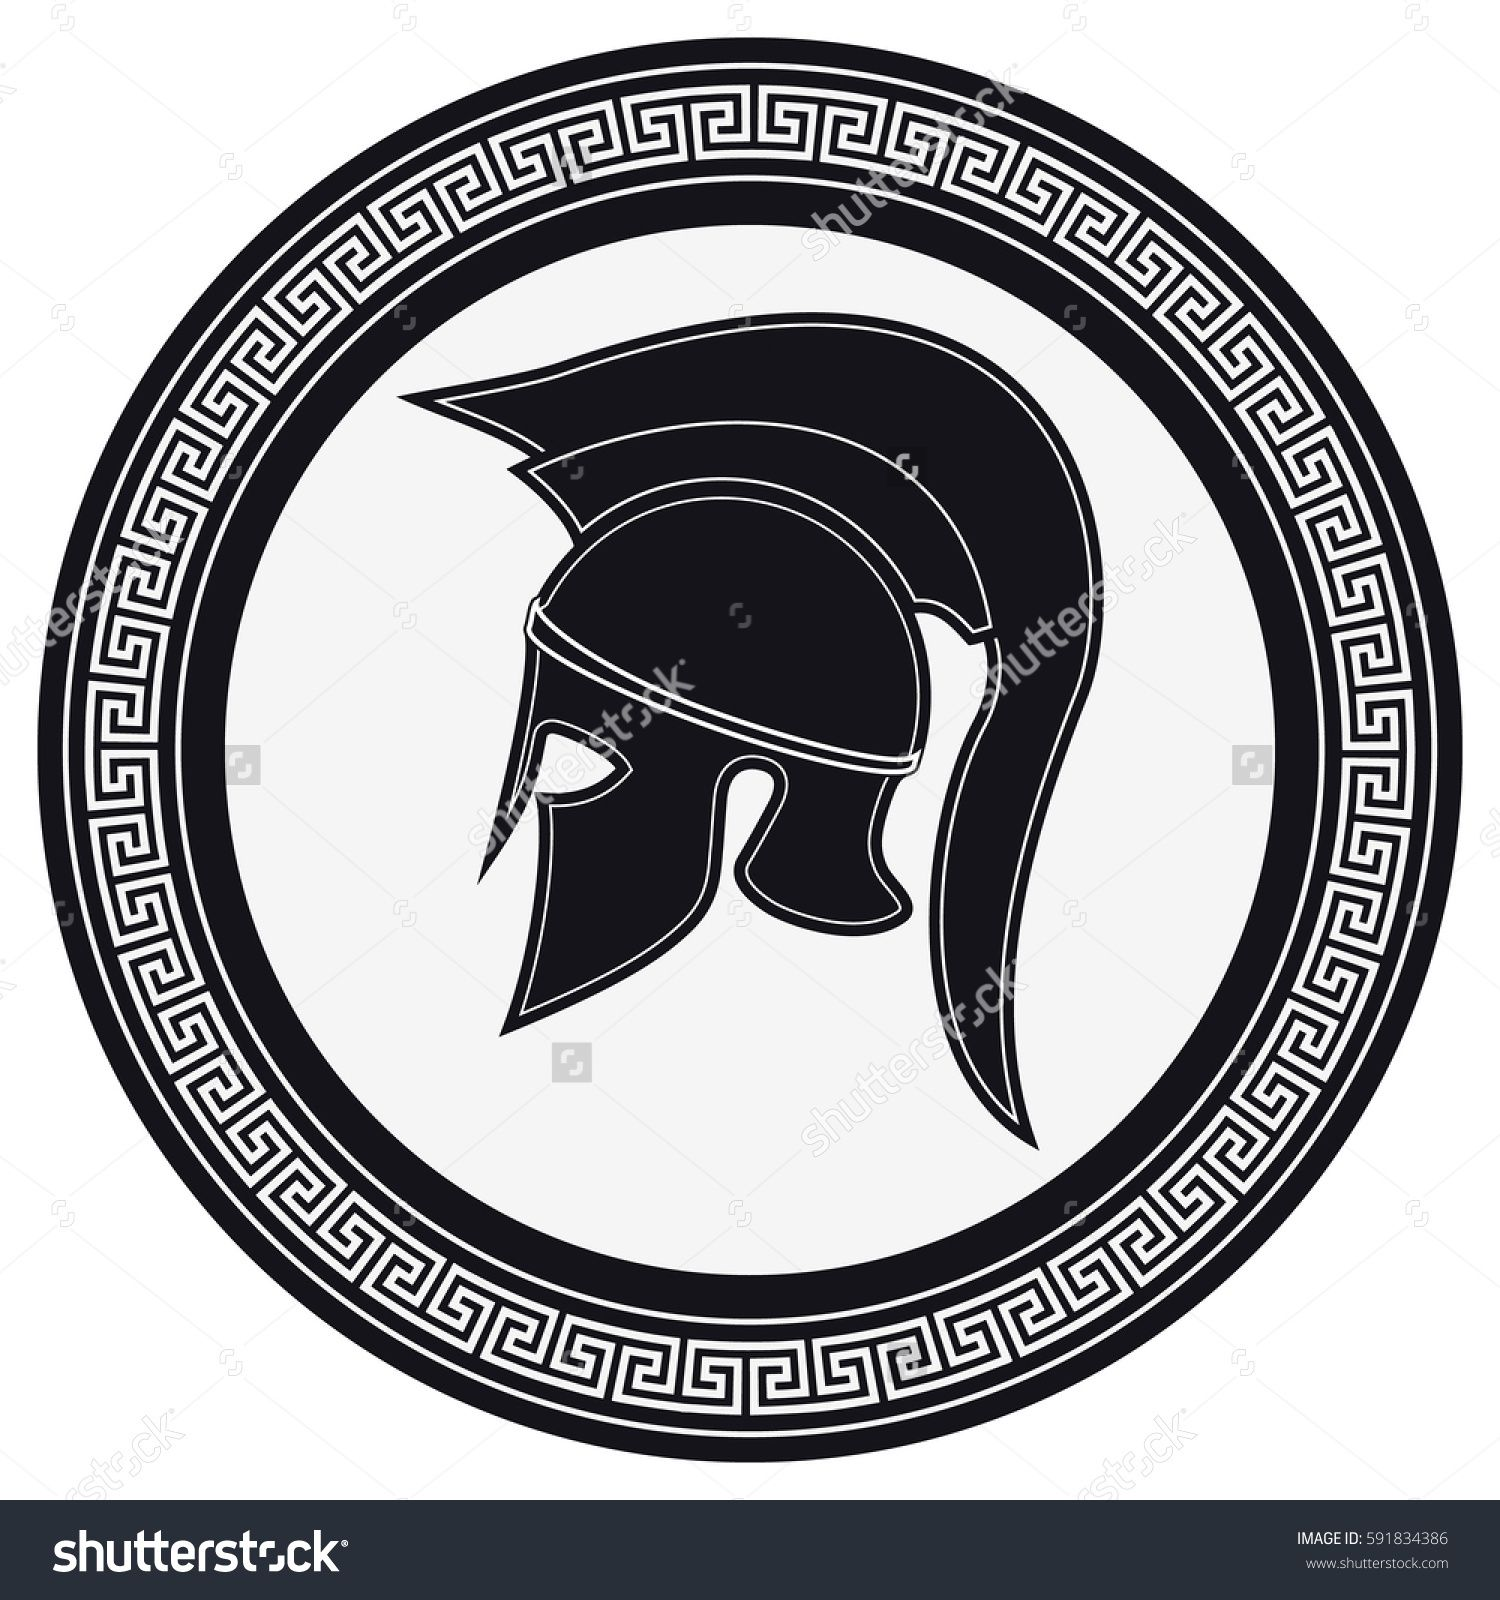 clipart black and white download Vector crest silhouette. Ancient greek helmet with